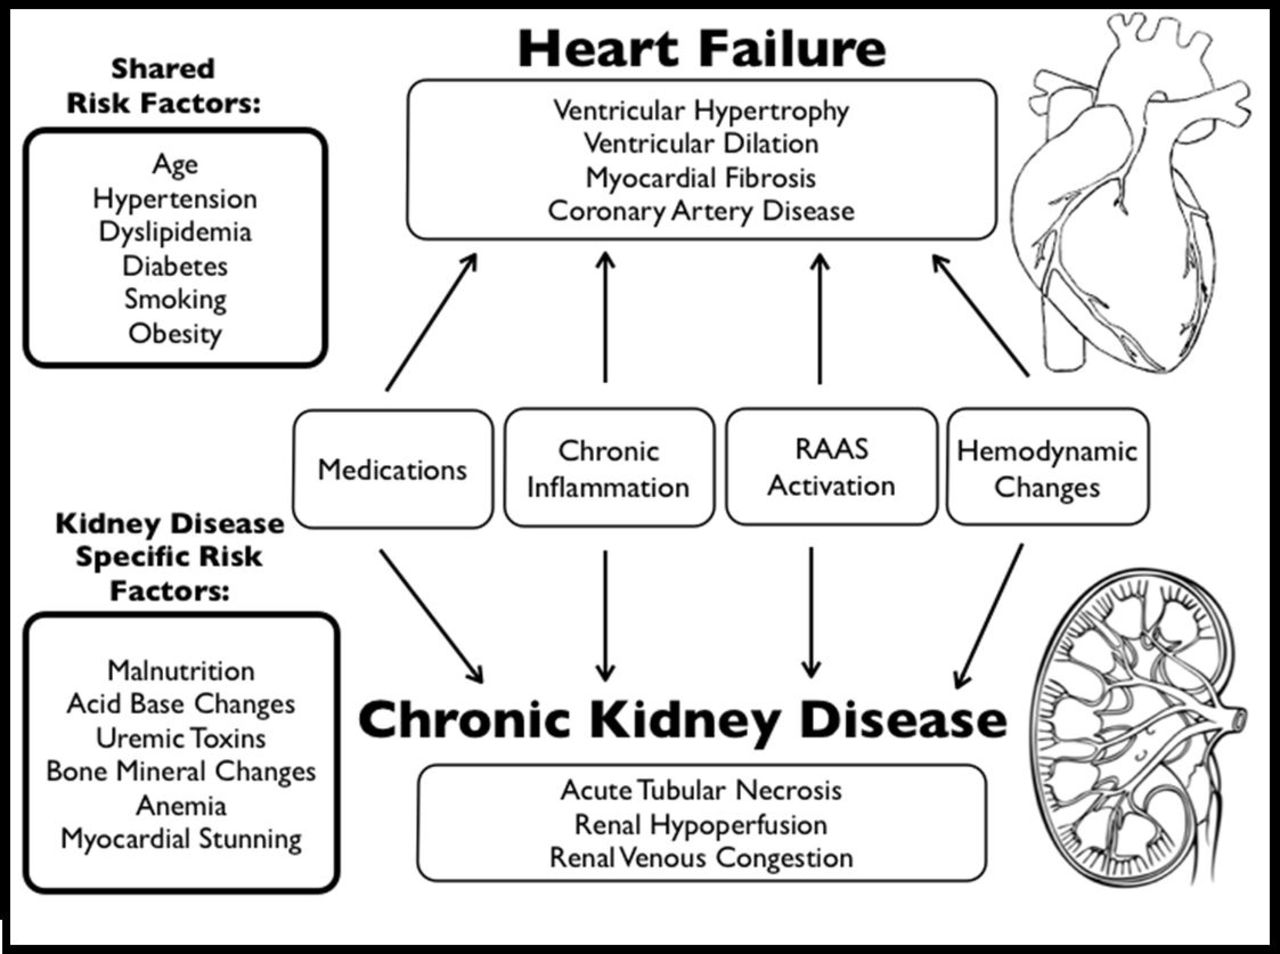 Heart Failure In Patients With Kidney Disease